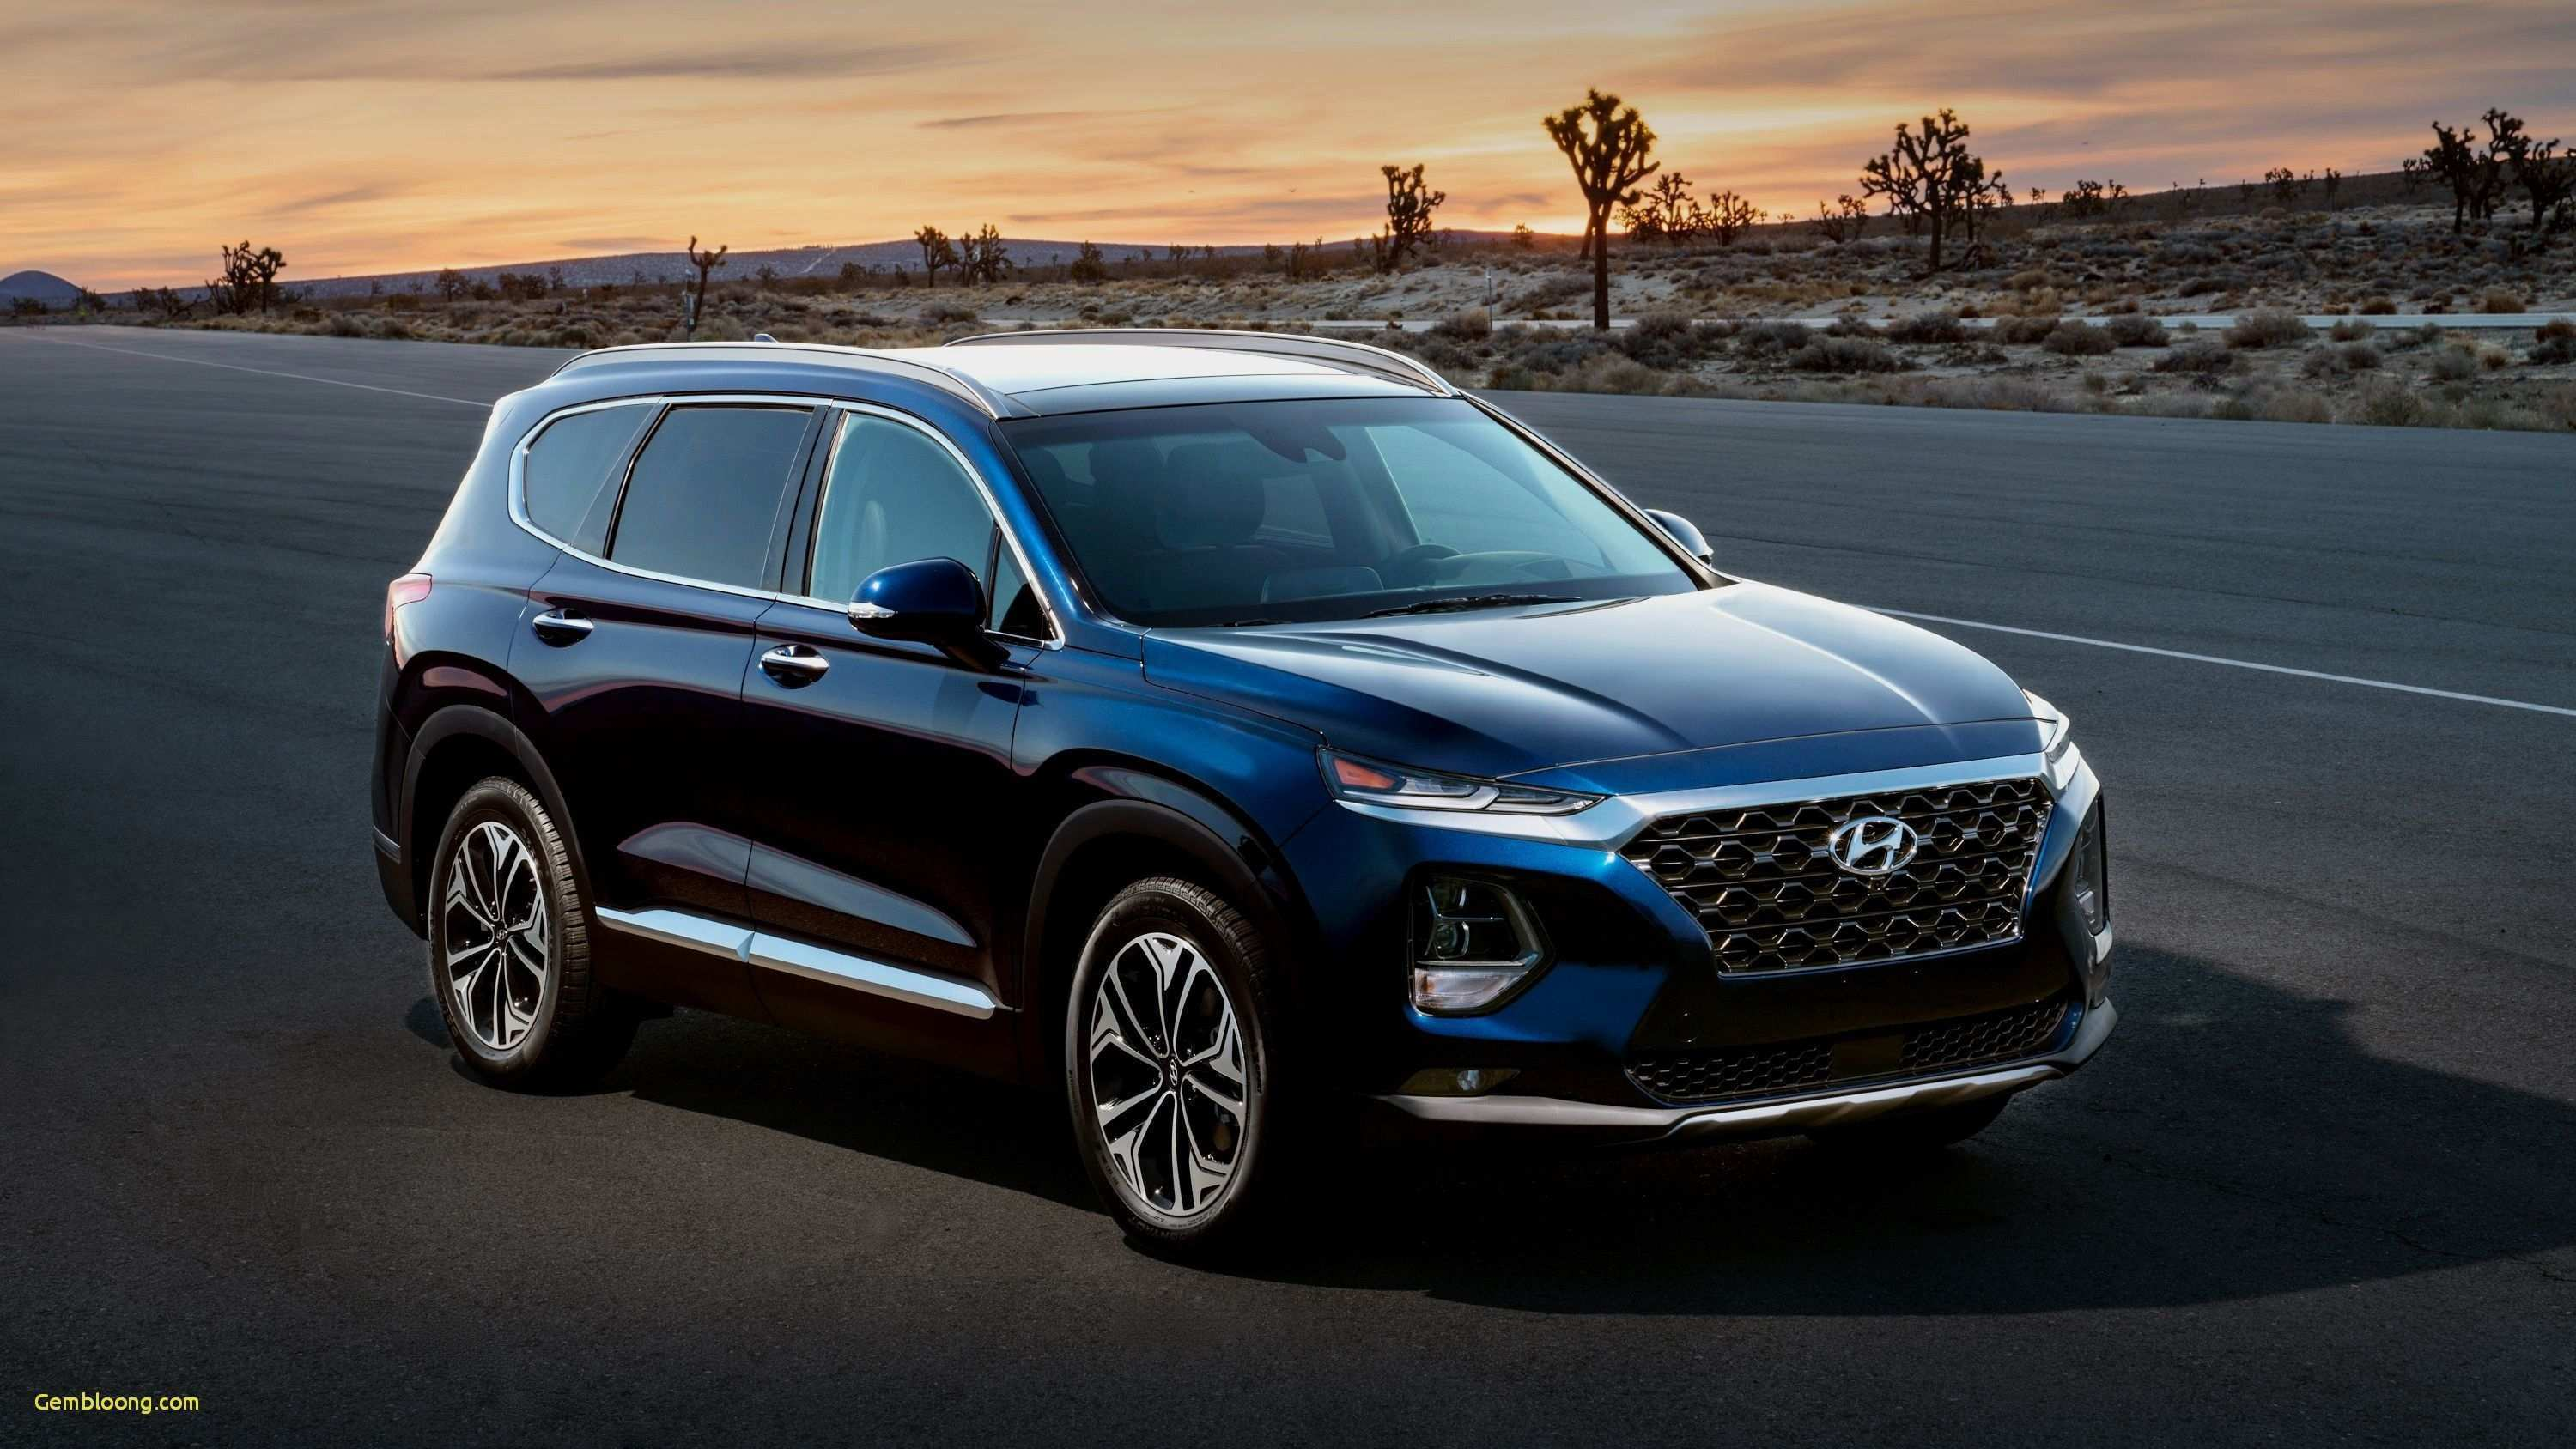 49 Best Review The Infiniti 2019 Models New Release Price for The Infiniti 2019 Models New Release